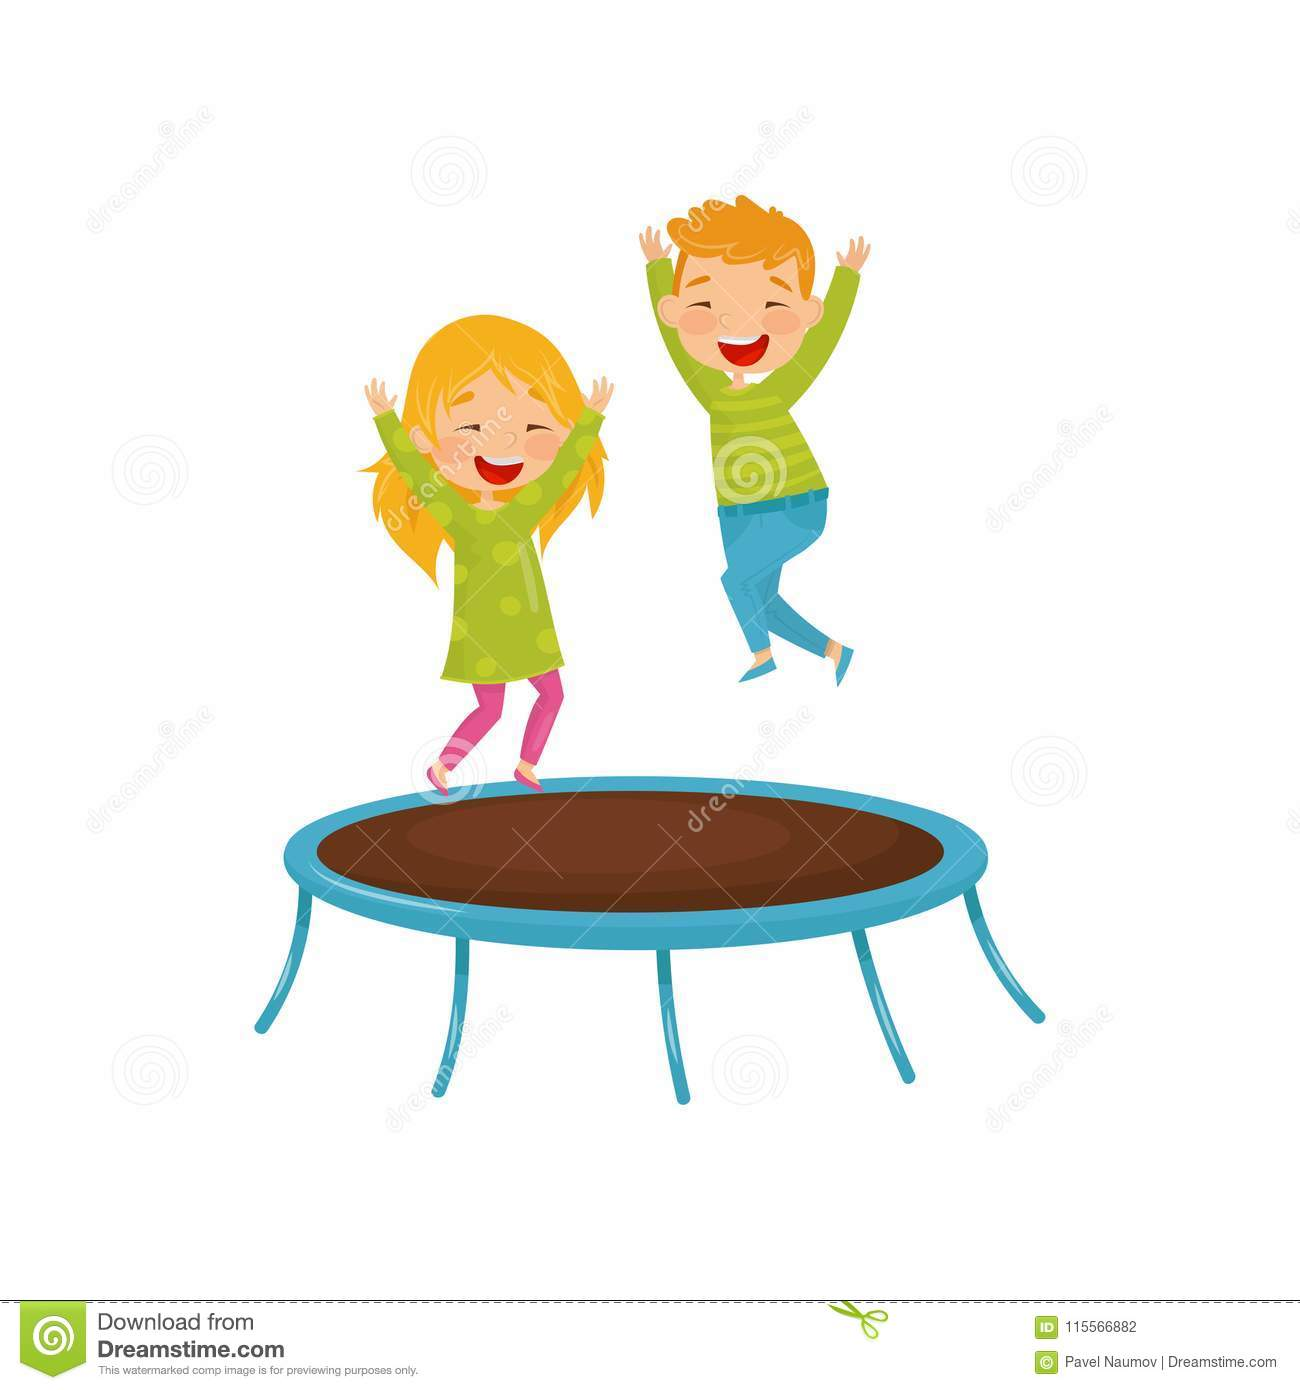 Energetic children jumping on trampoline. Joyful brother and sister having fun together. Flat vector design